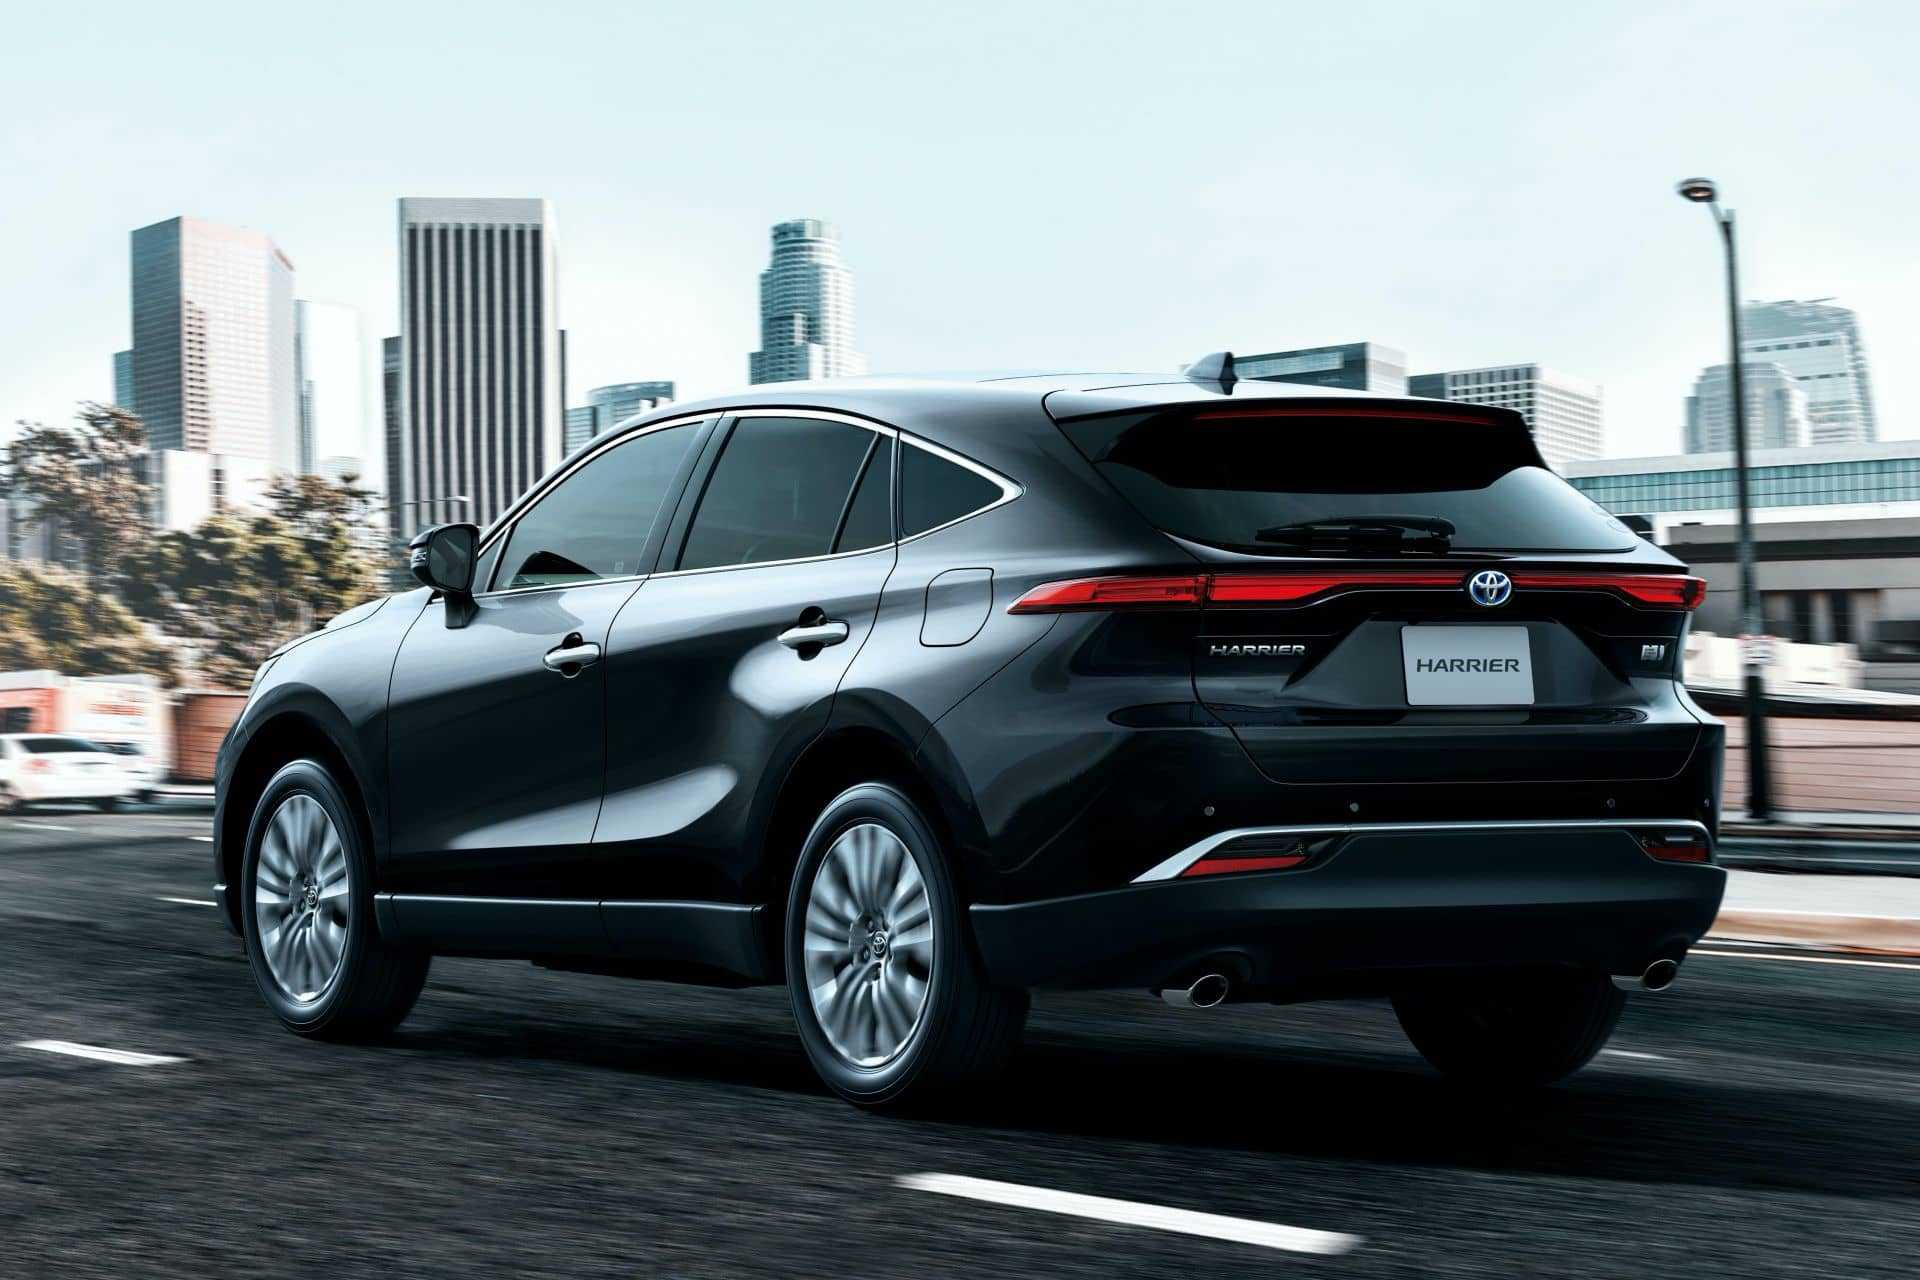 2020-Toyota-Harrier-JDM-spec-4